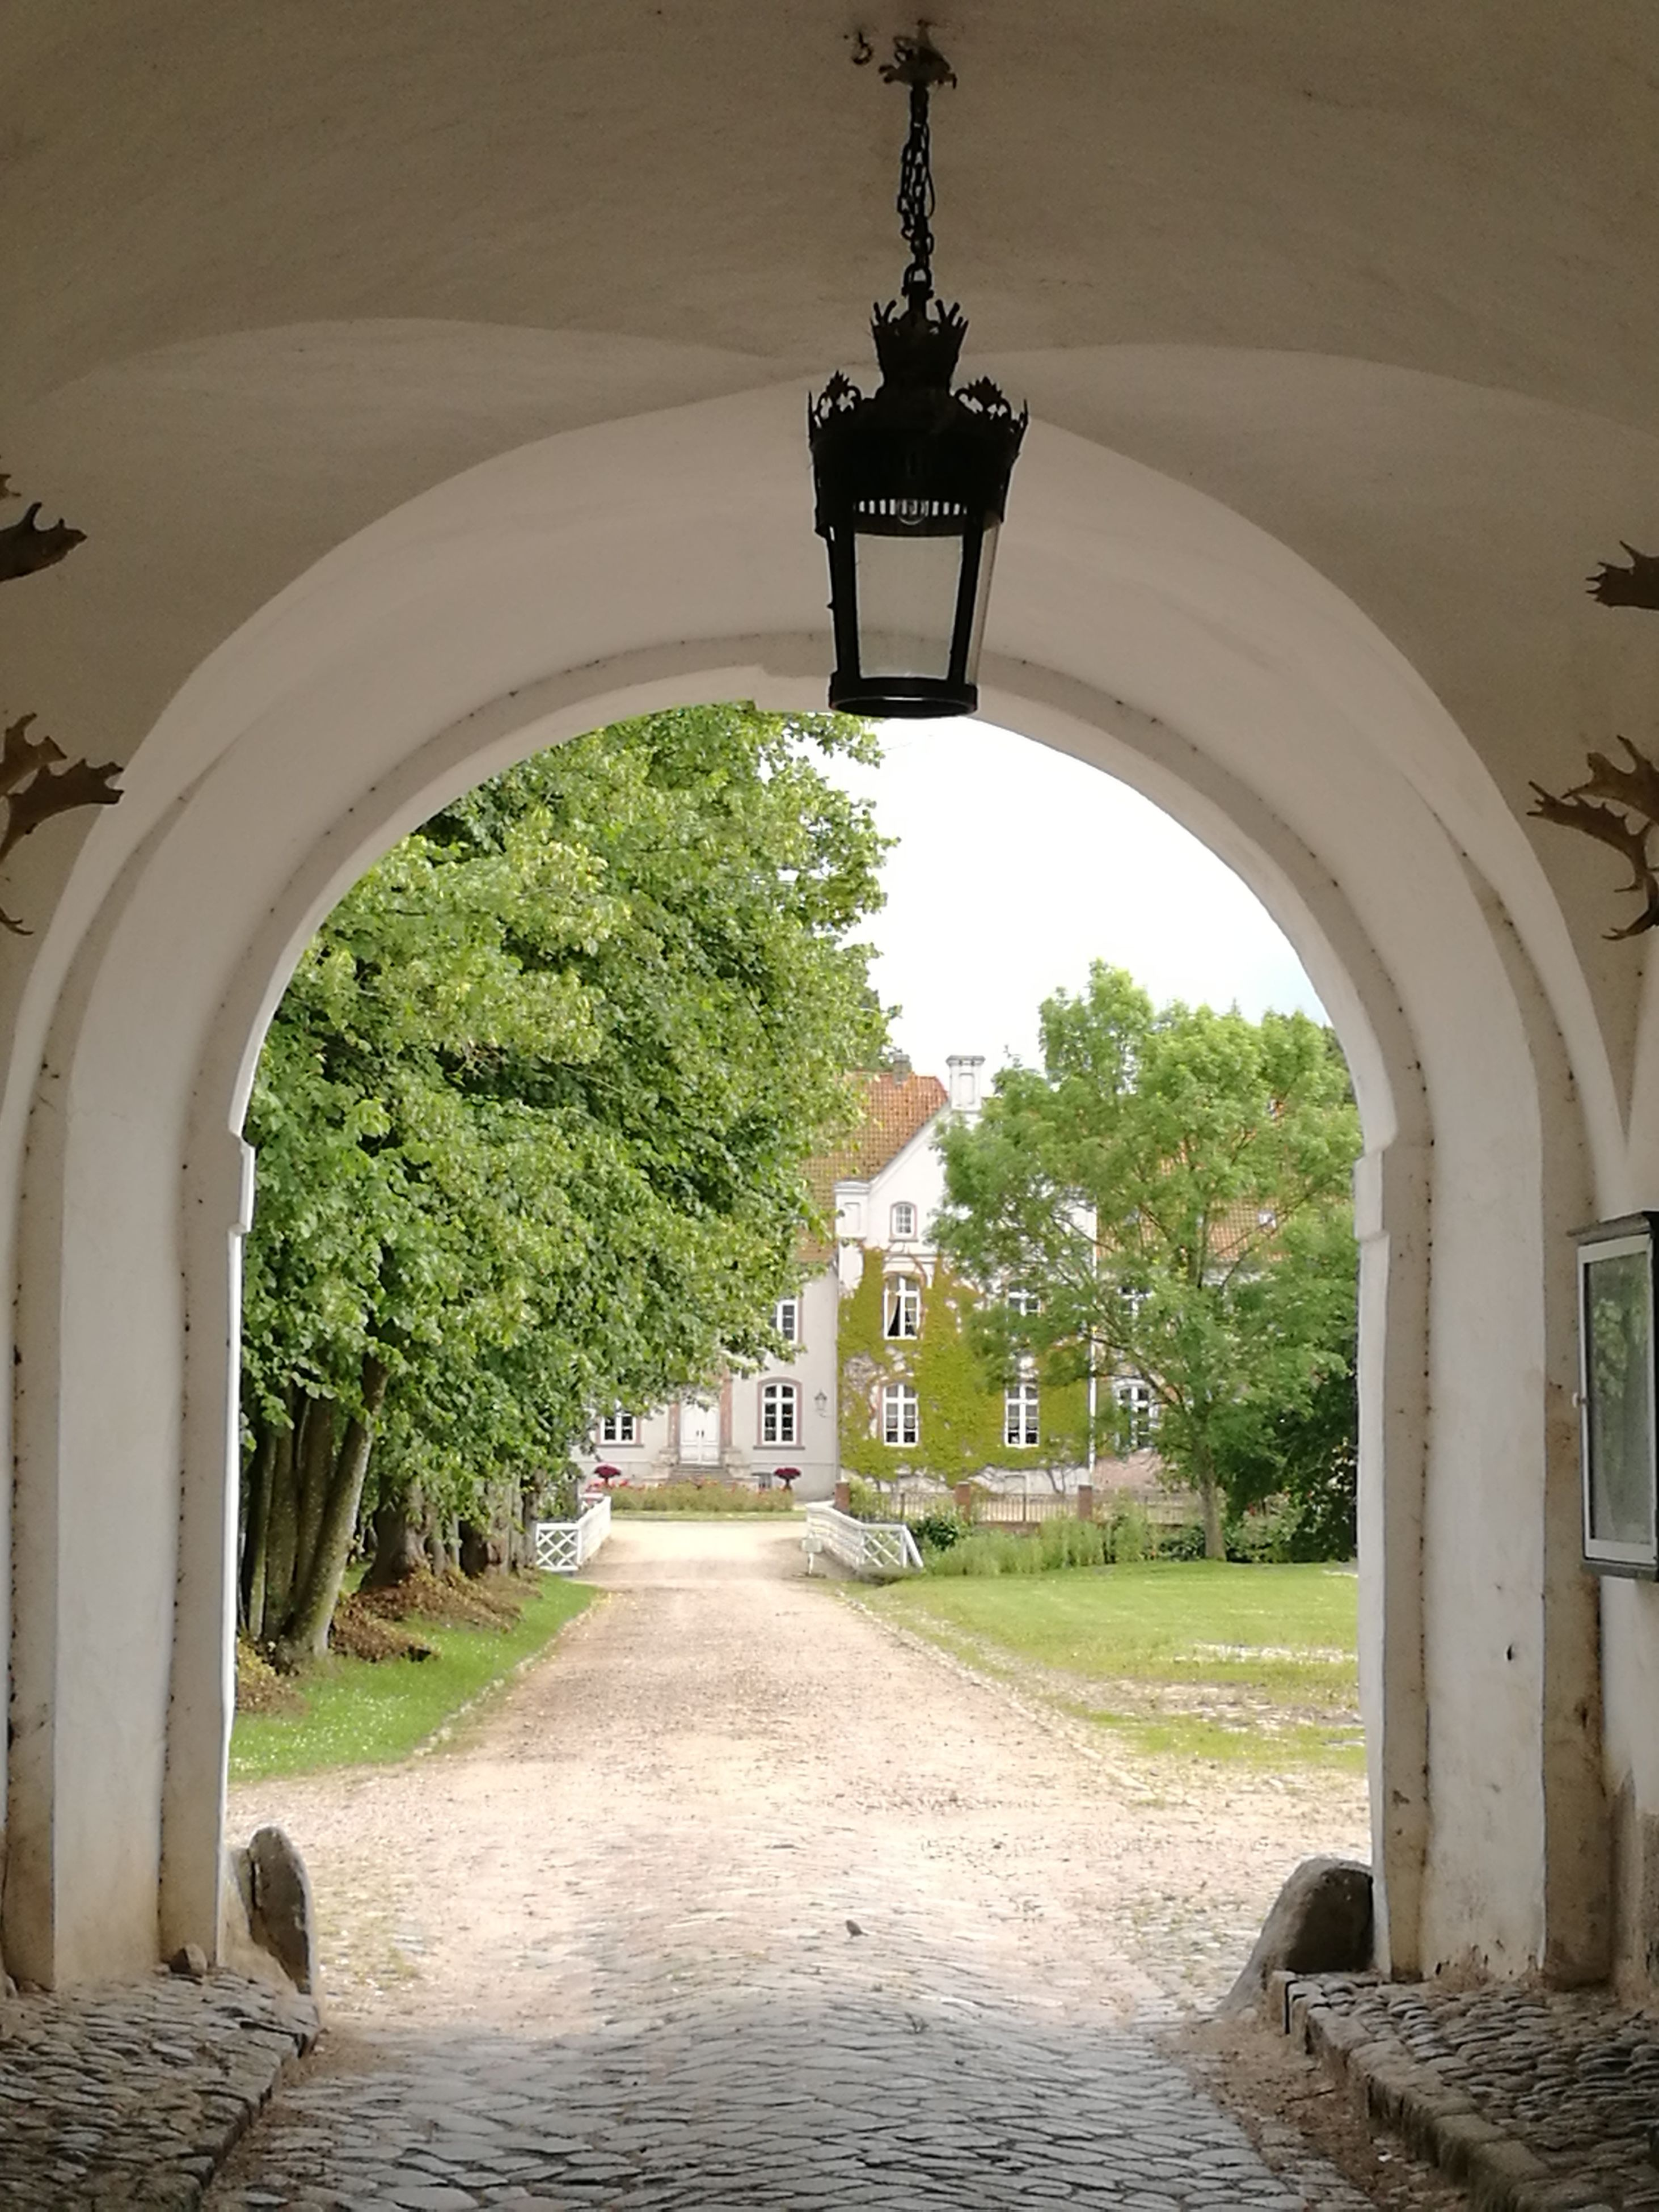 architecture, arch, the way forward, built structure, no people, day, nature, outdoors